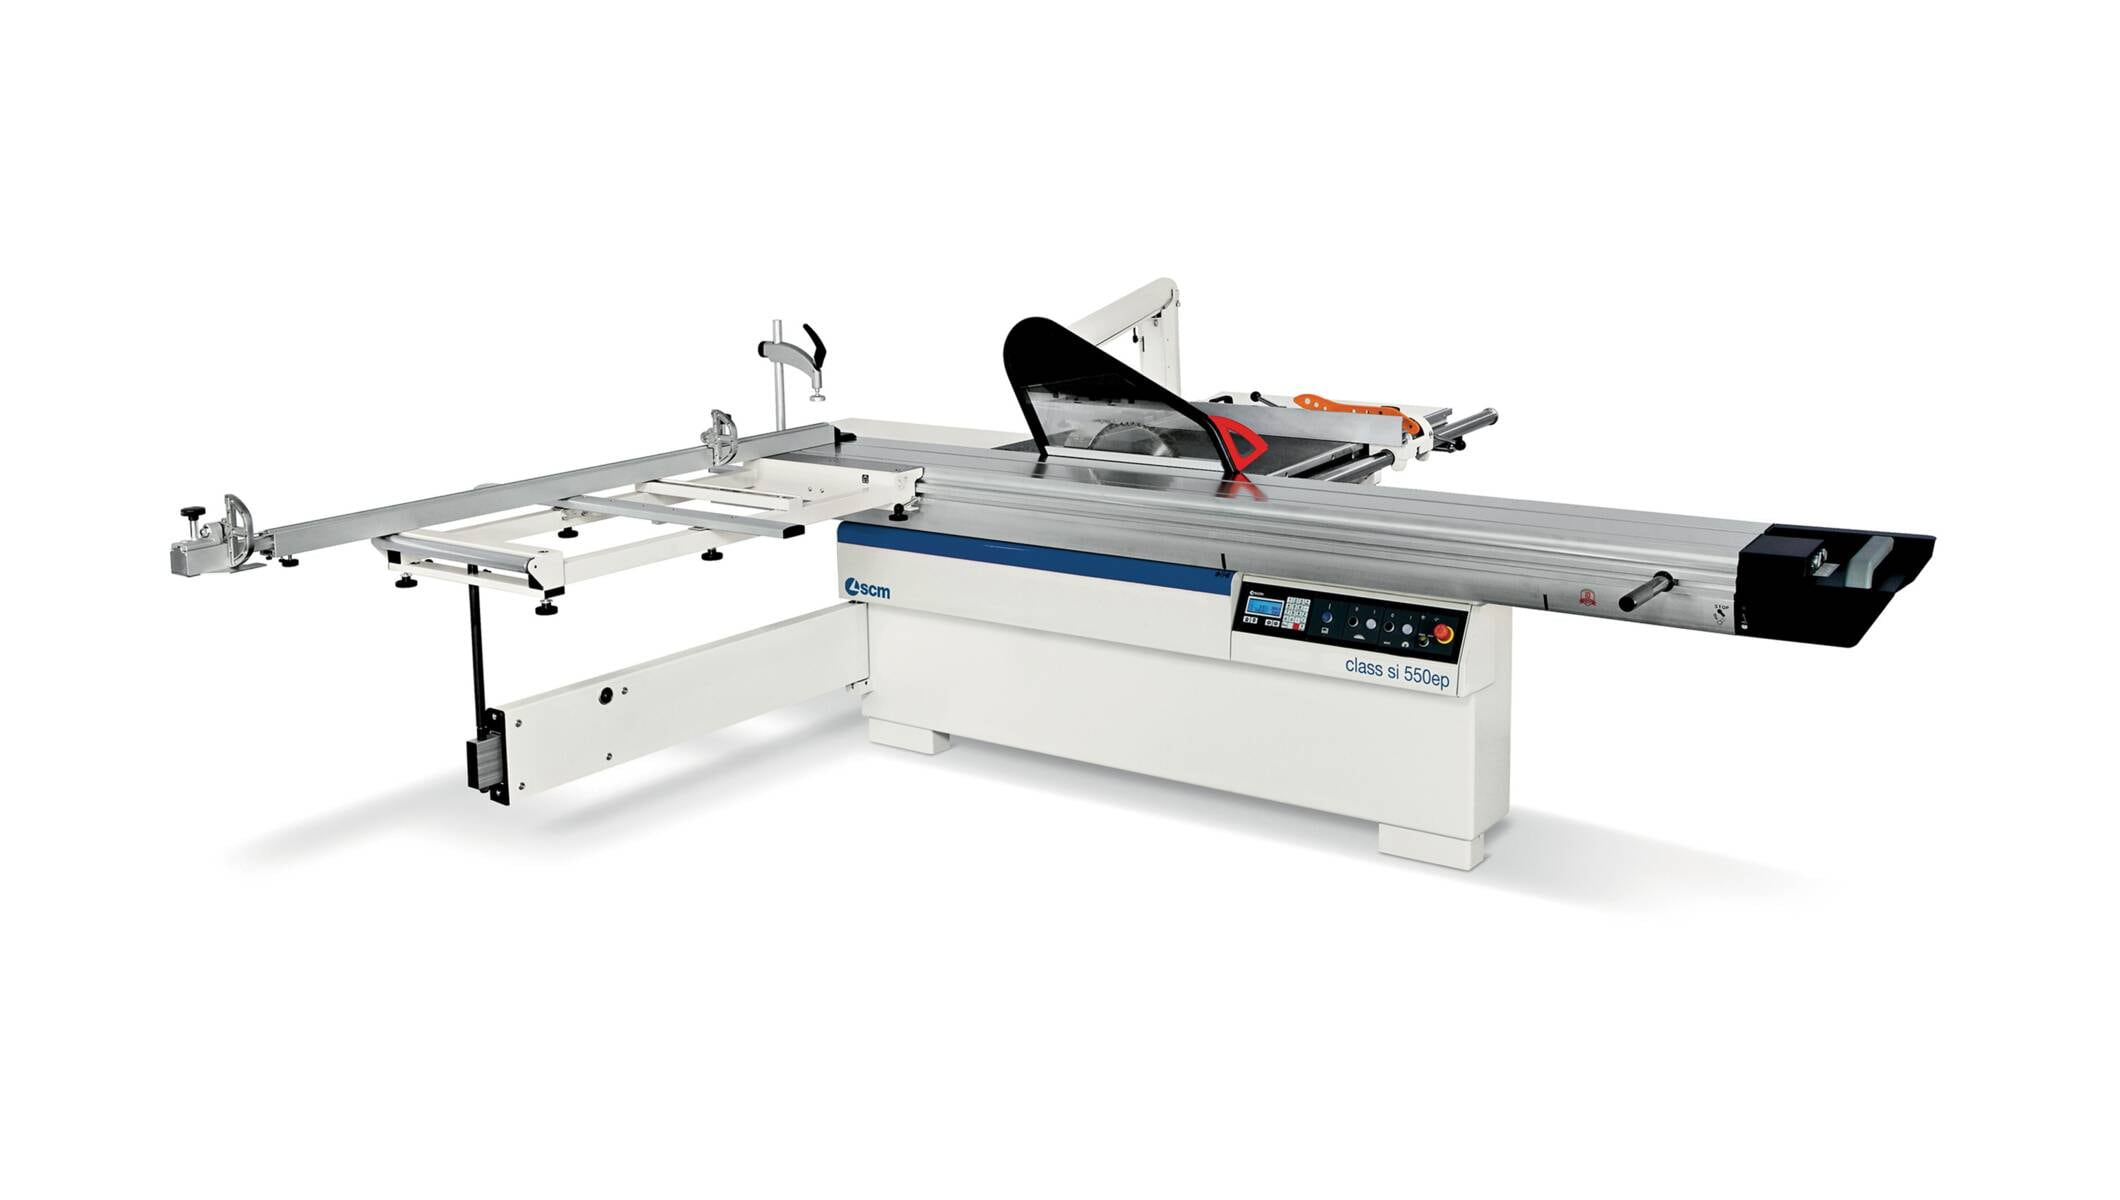 Joinery machines - Sliding table saws - class si 550ep